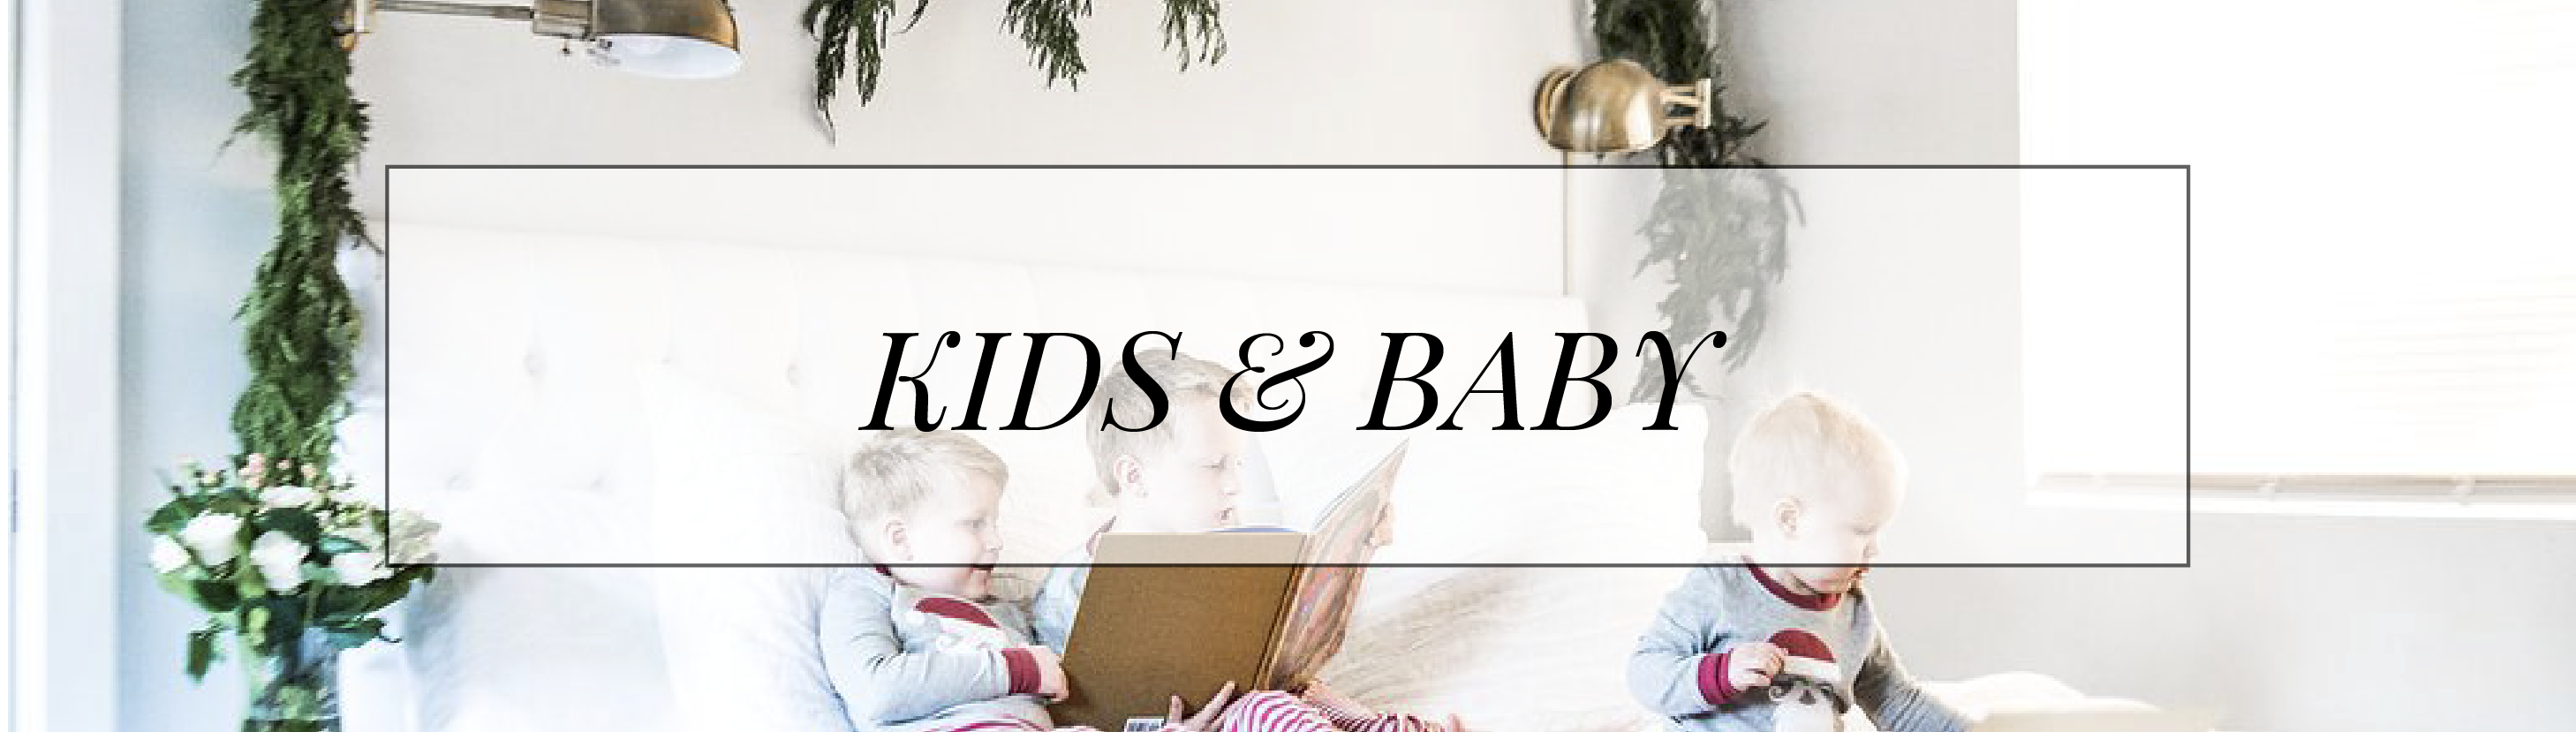 Elle Apparel Holiday Gift Guide: For Kids & Baby